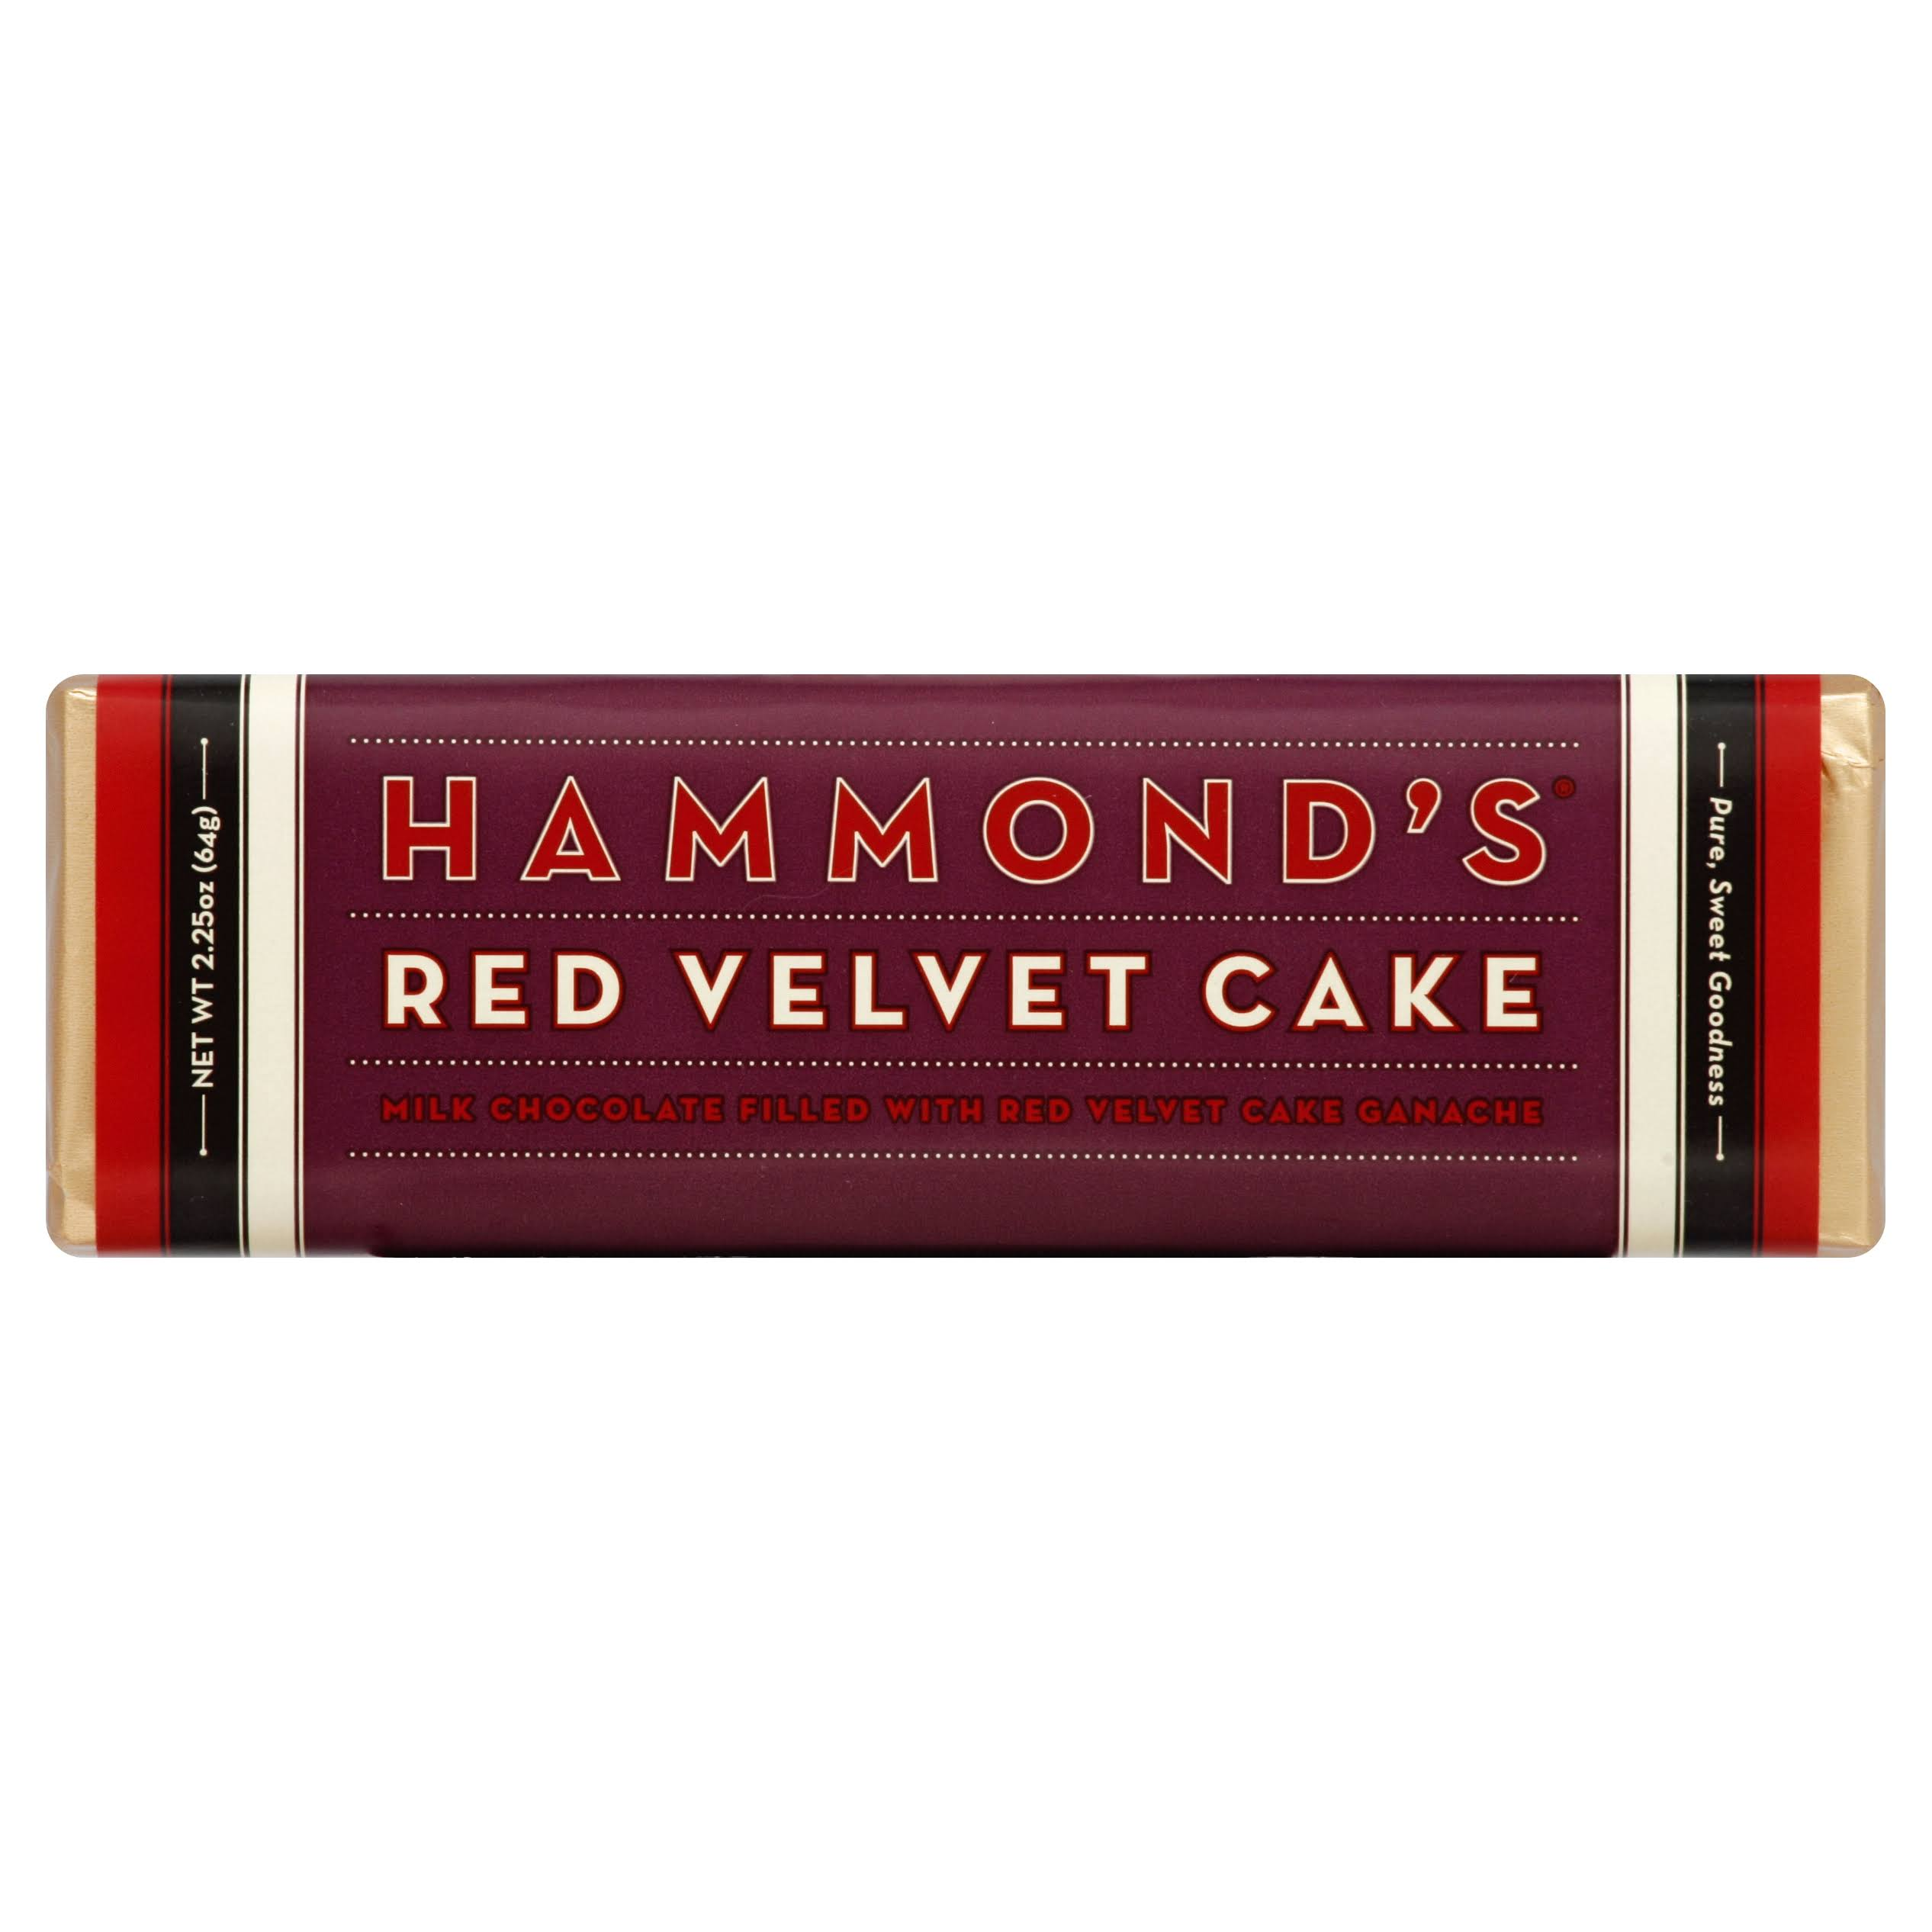 Hammond's Milk Chocolate Filled With Red Velvet Cake Ganache